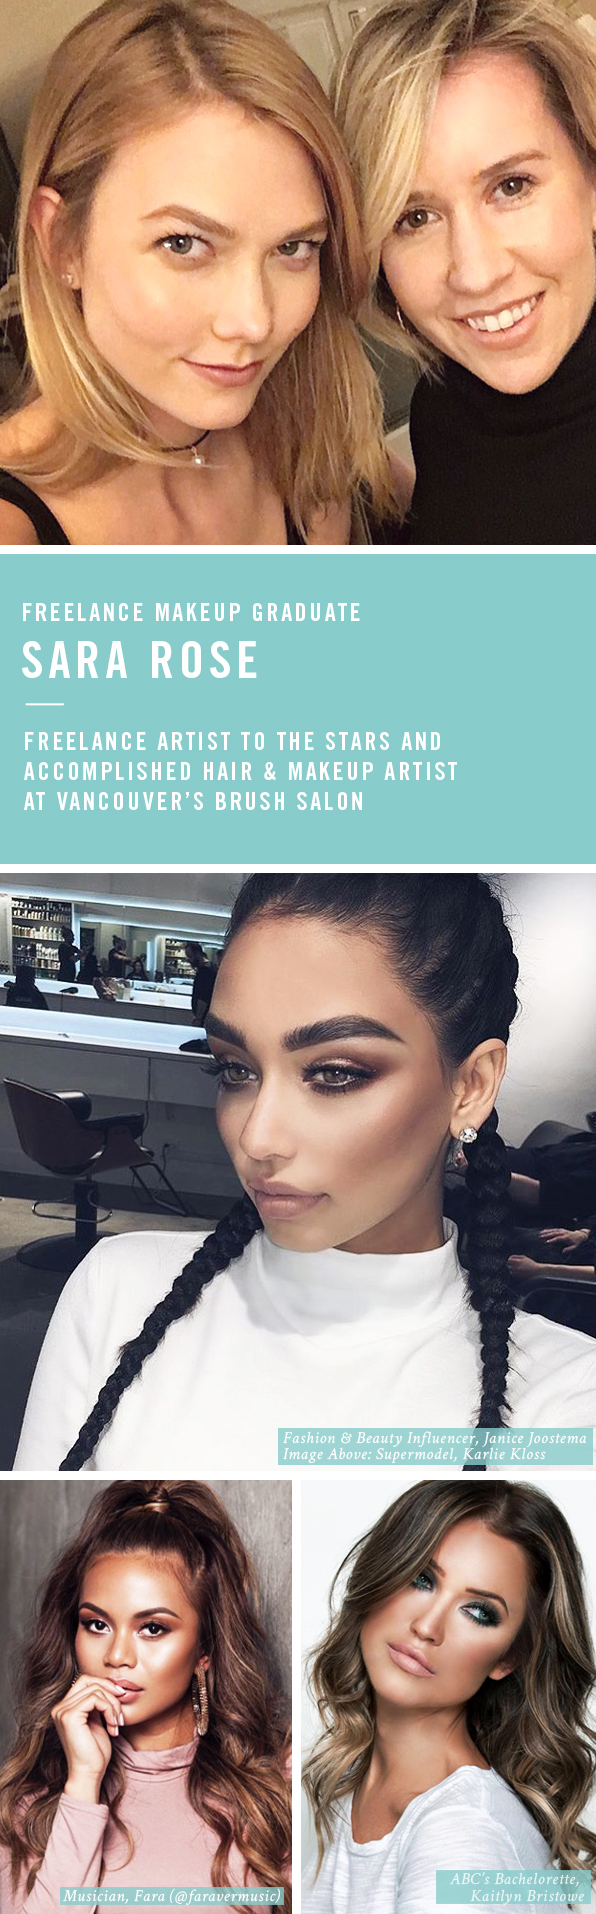 top-makeup-school-graduate-sara-rose